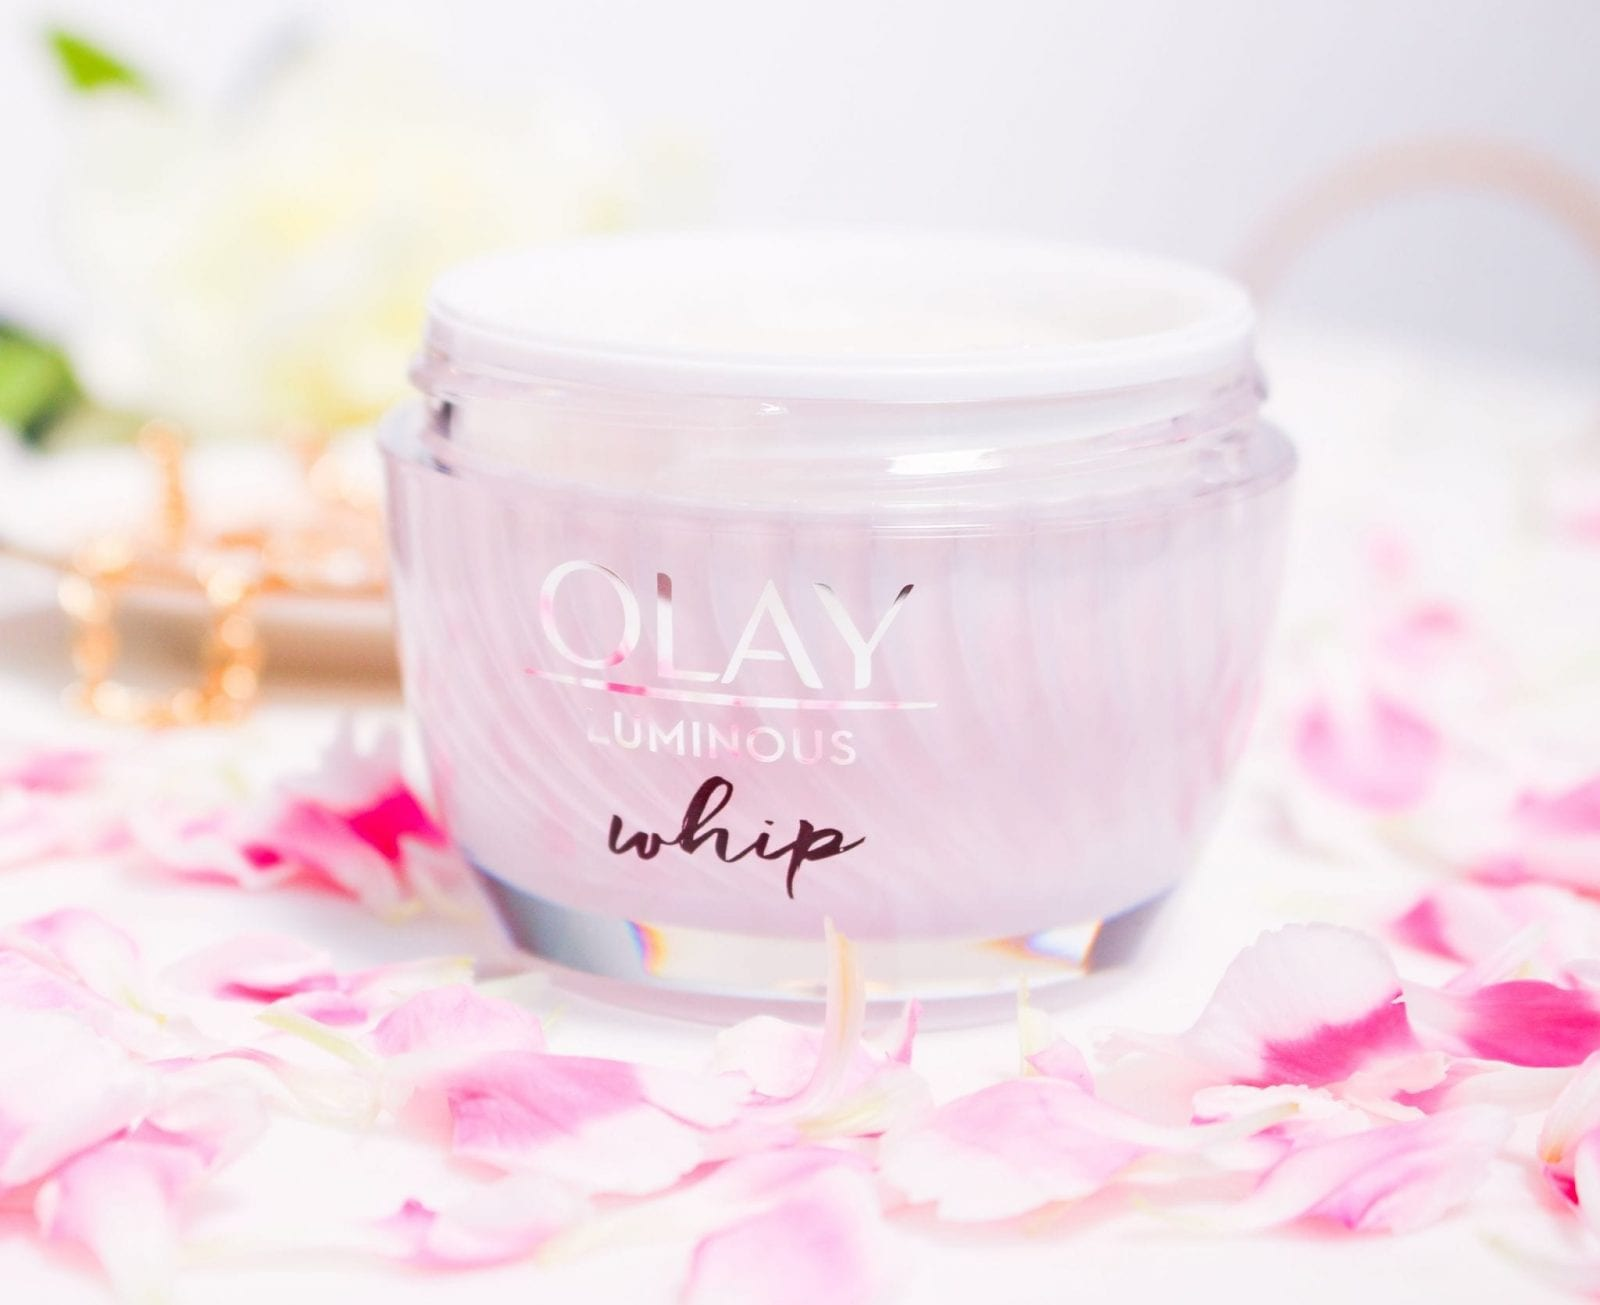 This is a close up of me holding the Olay Whips Moisturizer before application.